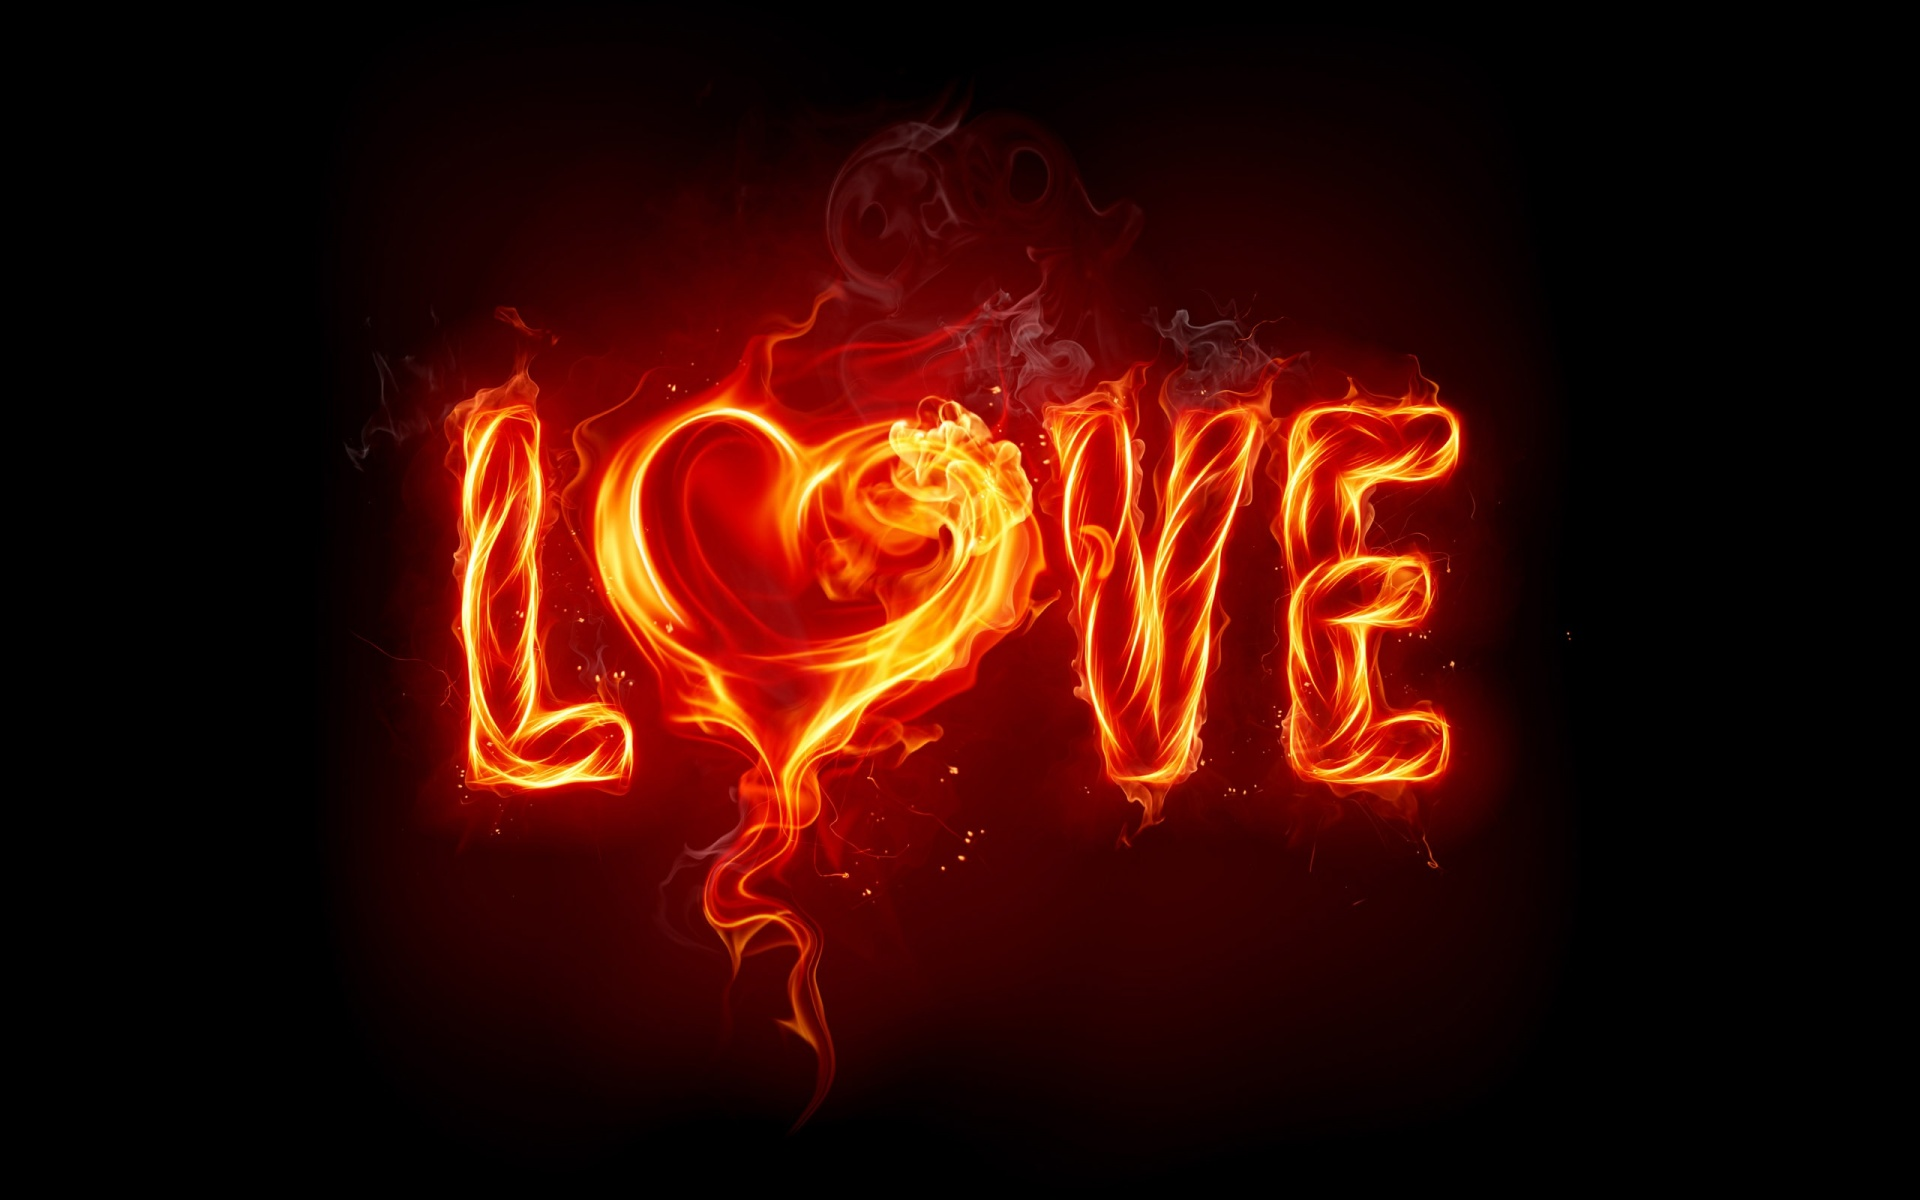 1920x1200 Burning love desktop PC and Mac wallpaper